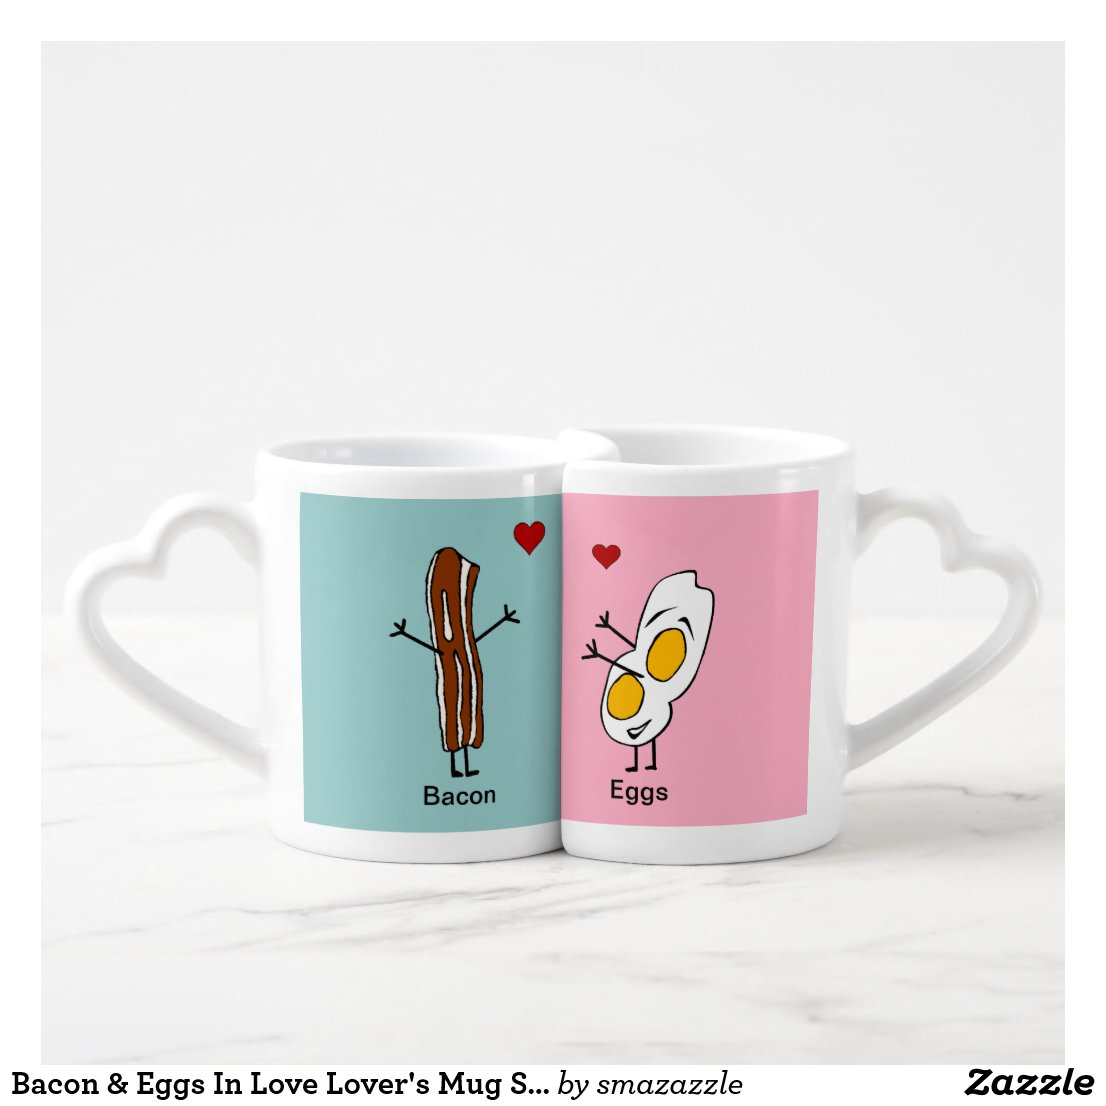 Bacon & Eggs In Love Lover' Mug Set